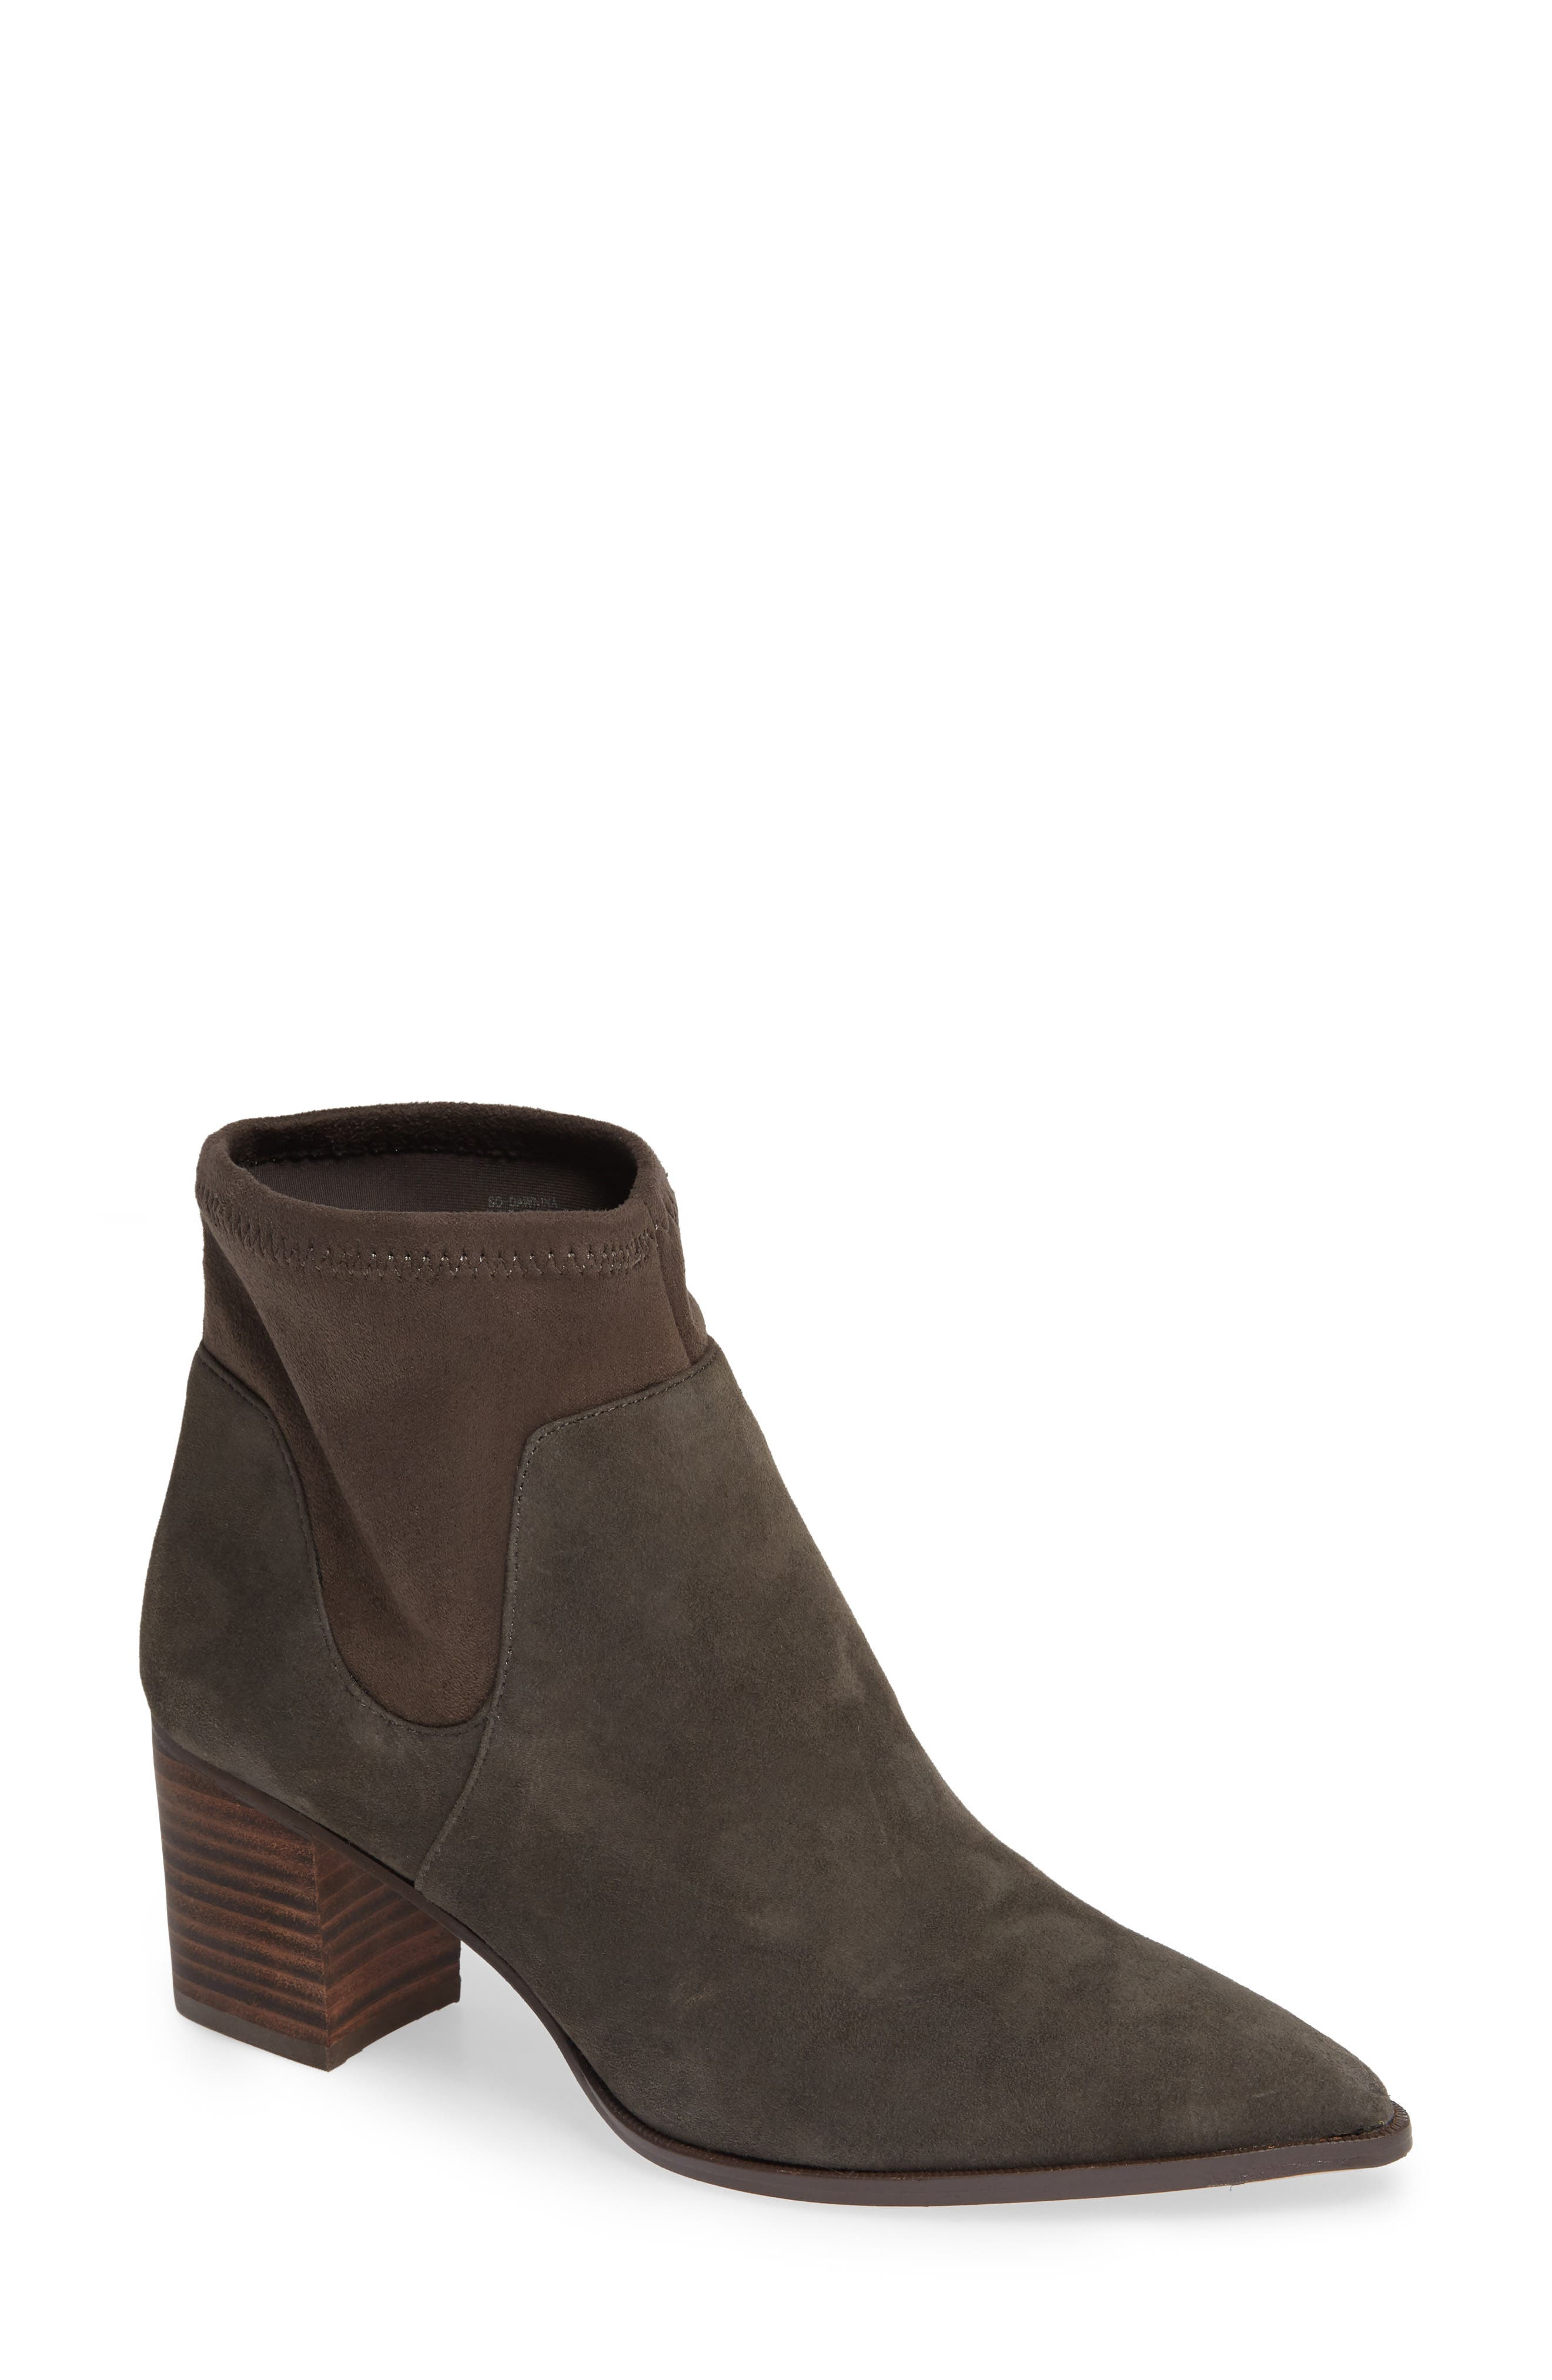 Dawnina Bootie,                             Main thumbnail 1, color,                             IRON SUEDE